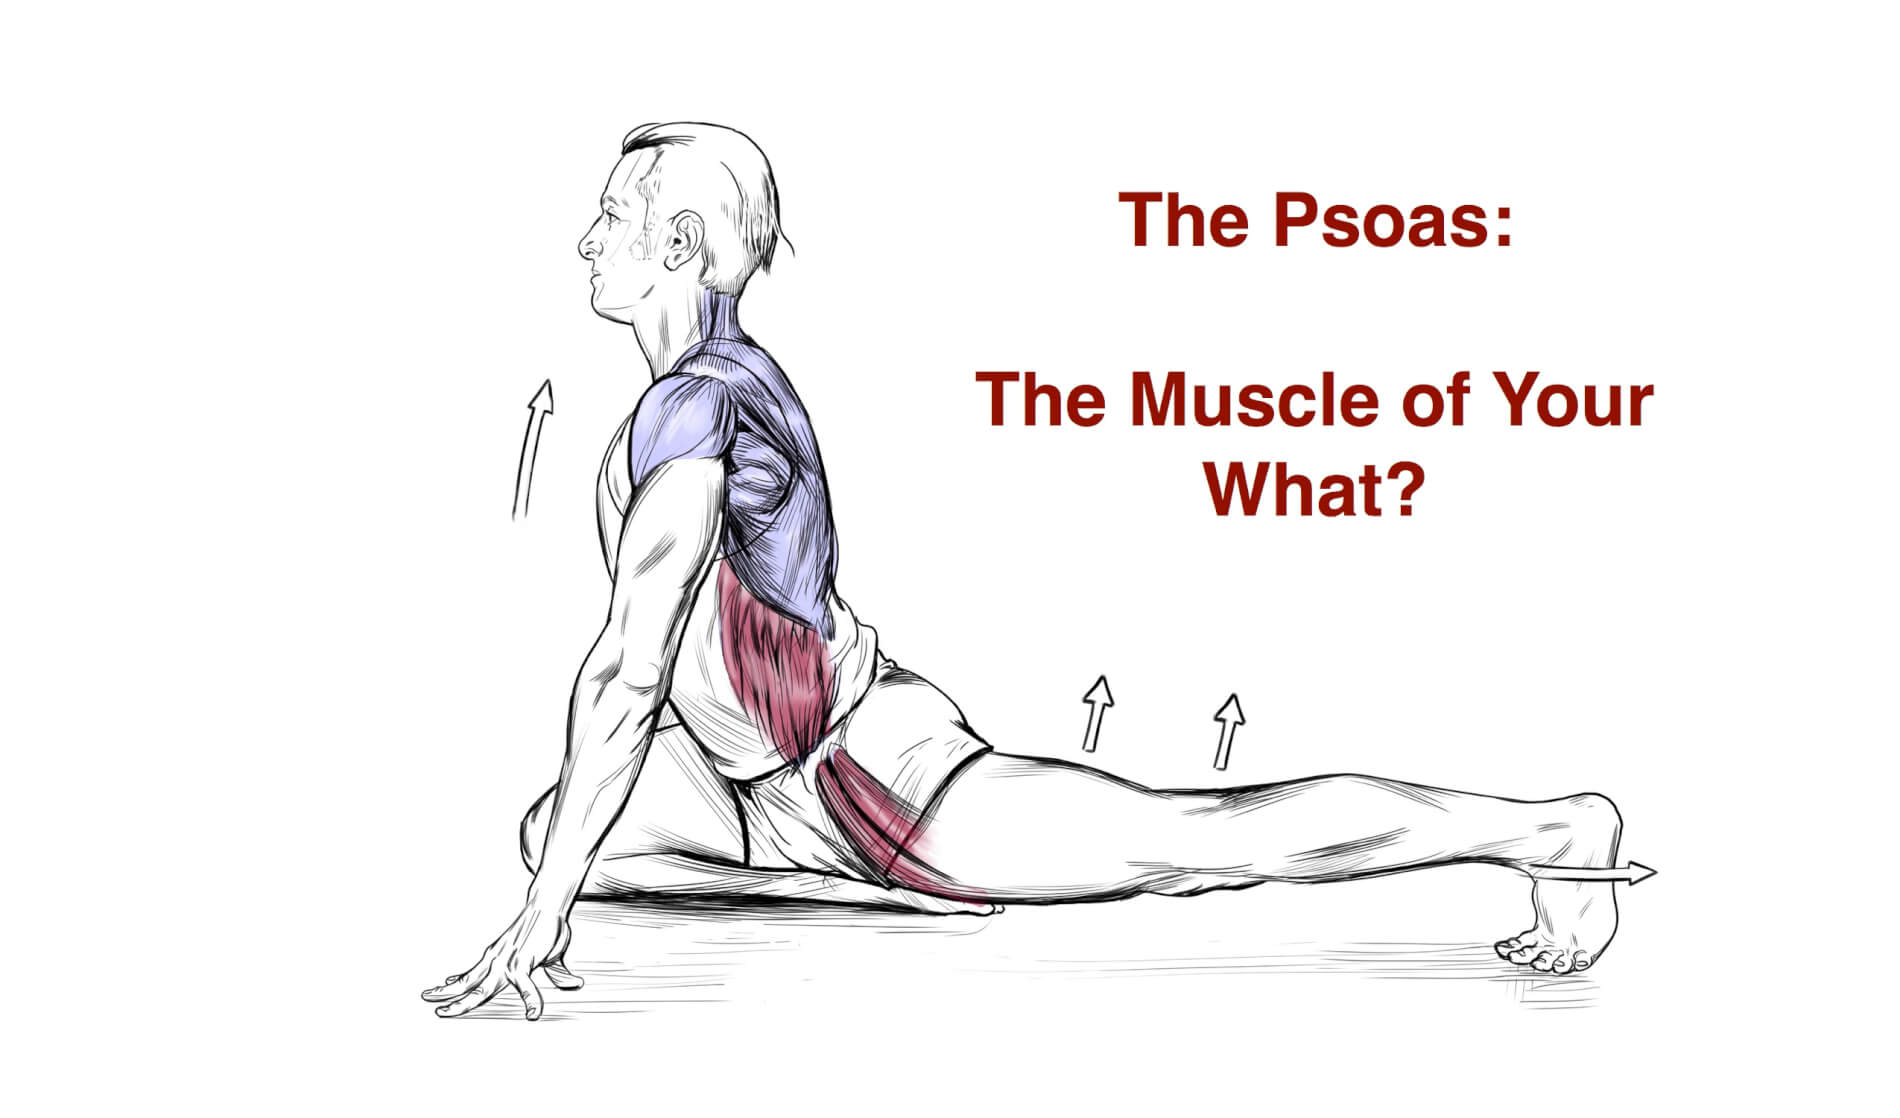 the psoas is not the muscle of your f ing soul applied yoga